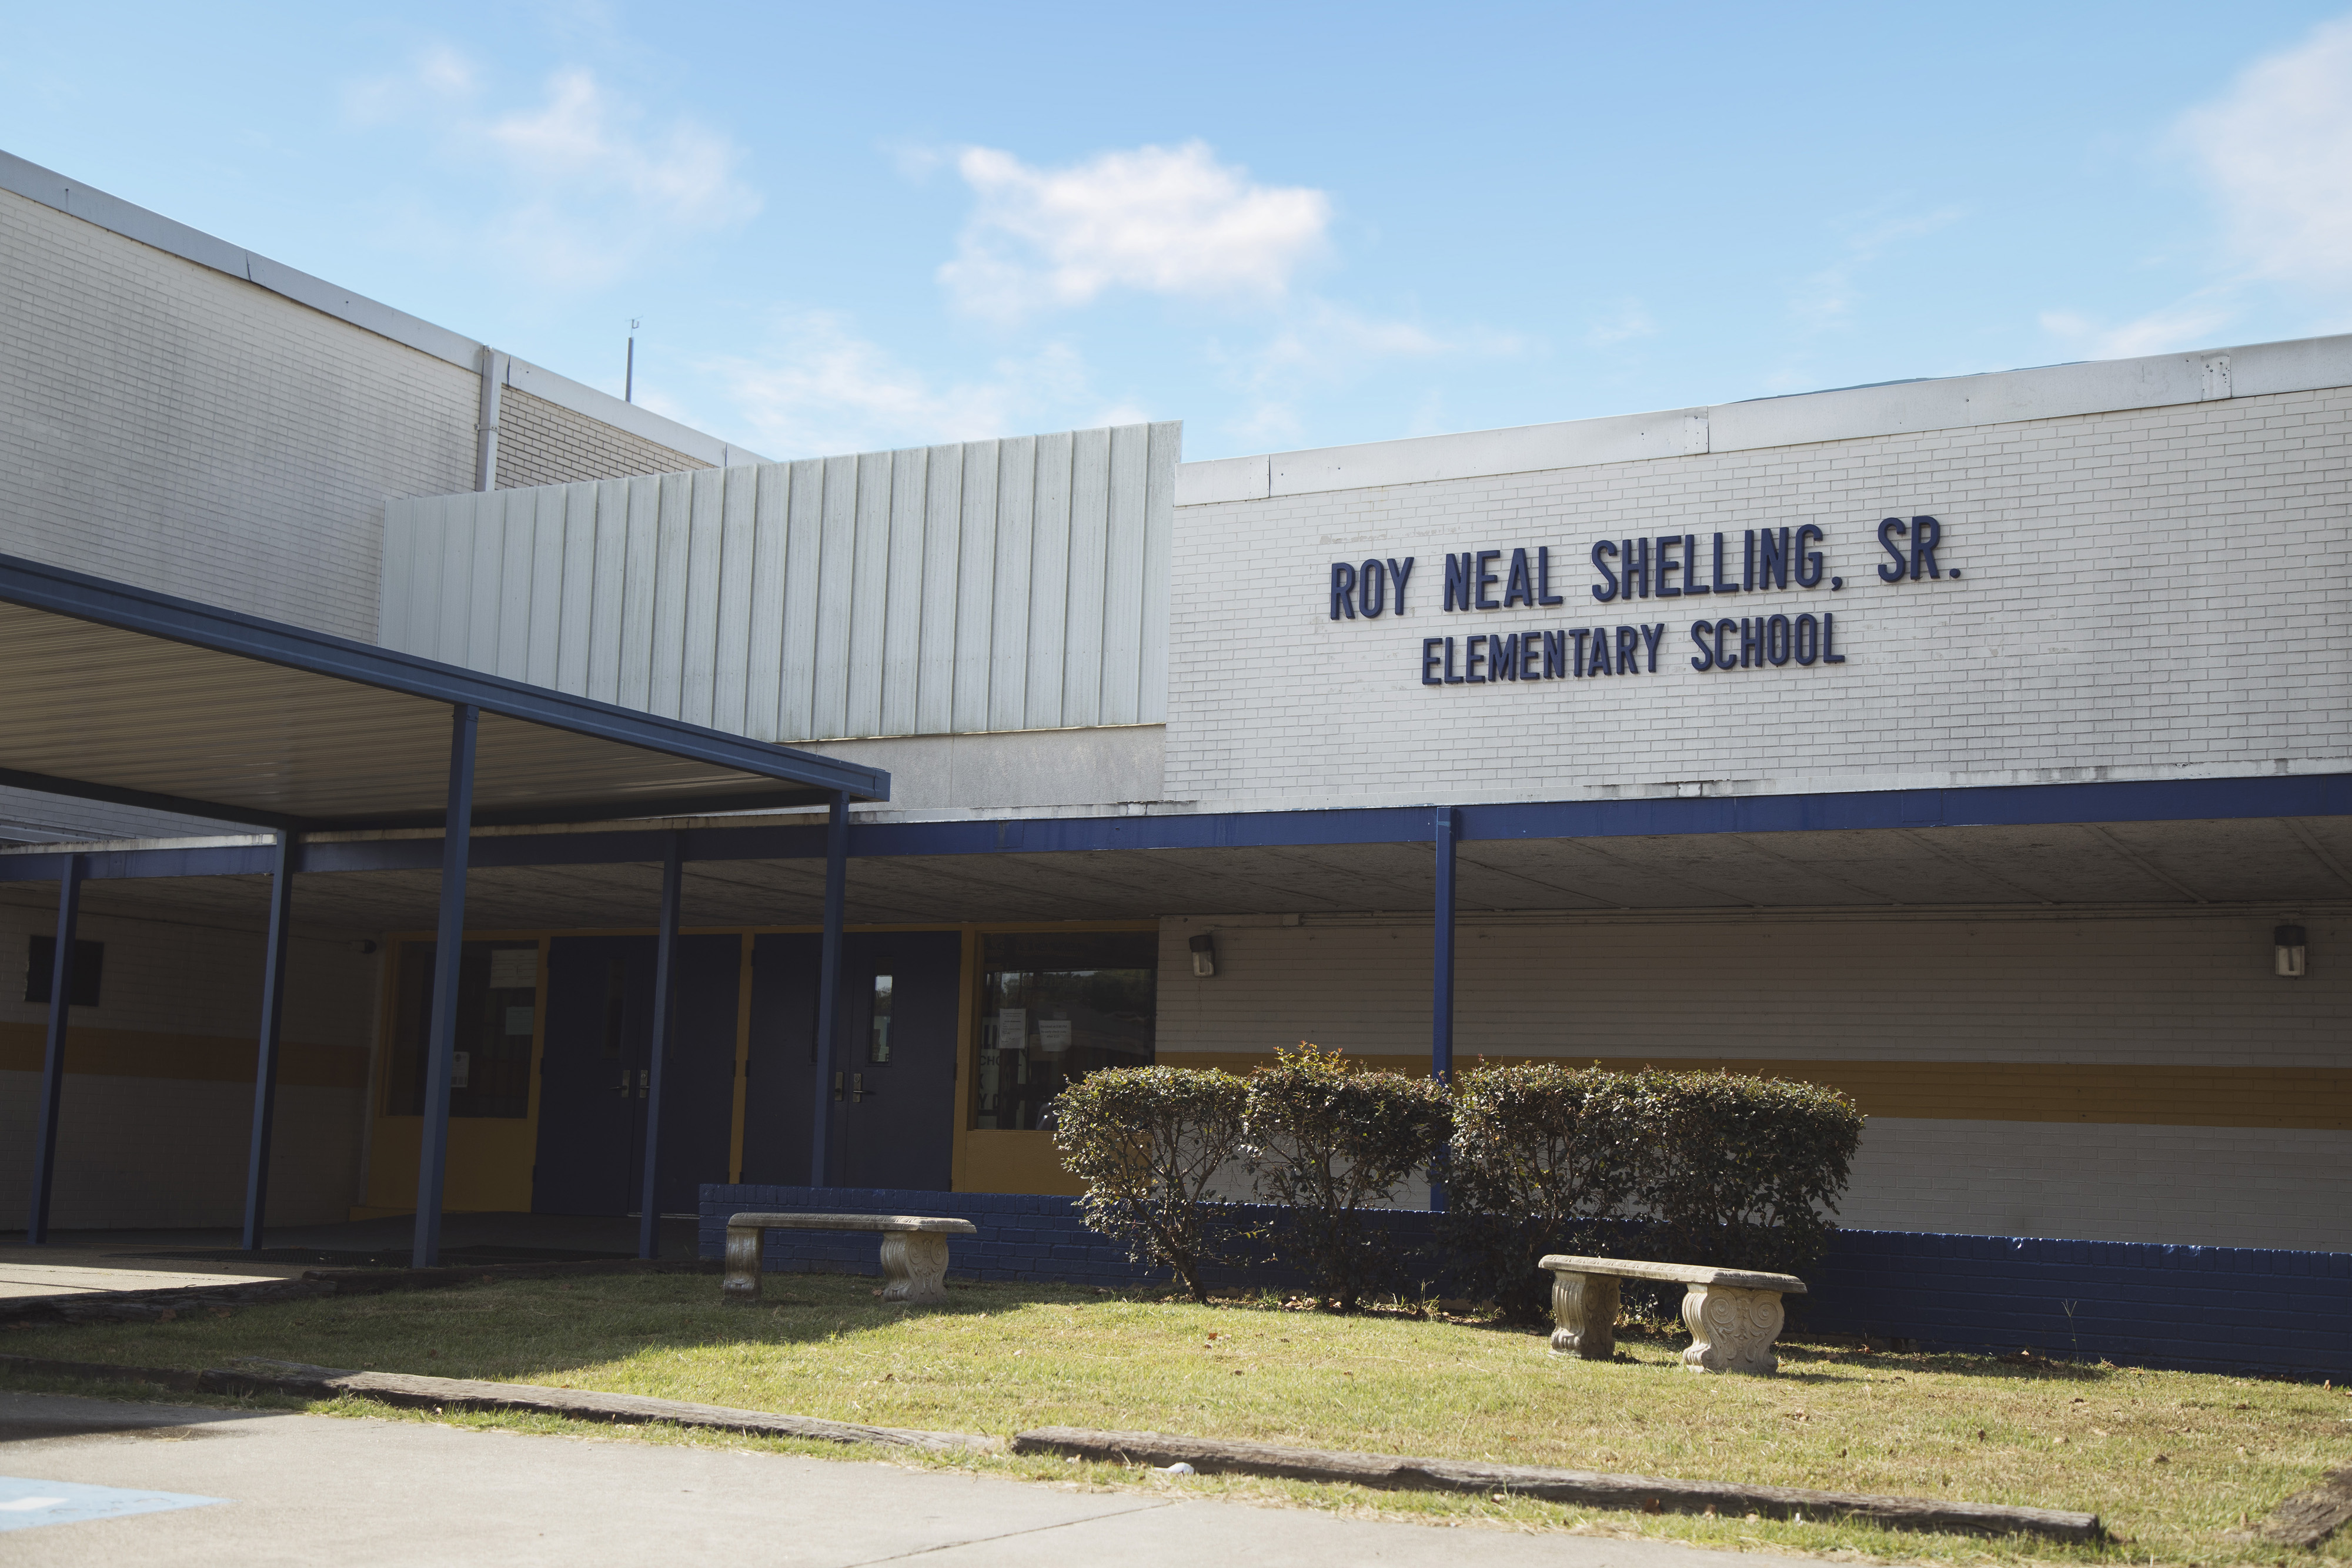 Roy Neal Shelling Elementary School Image